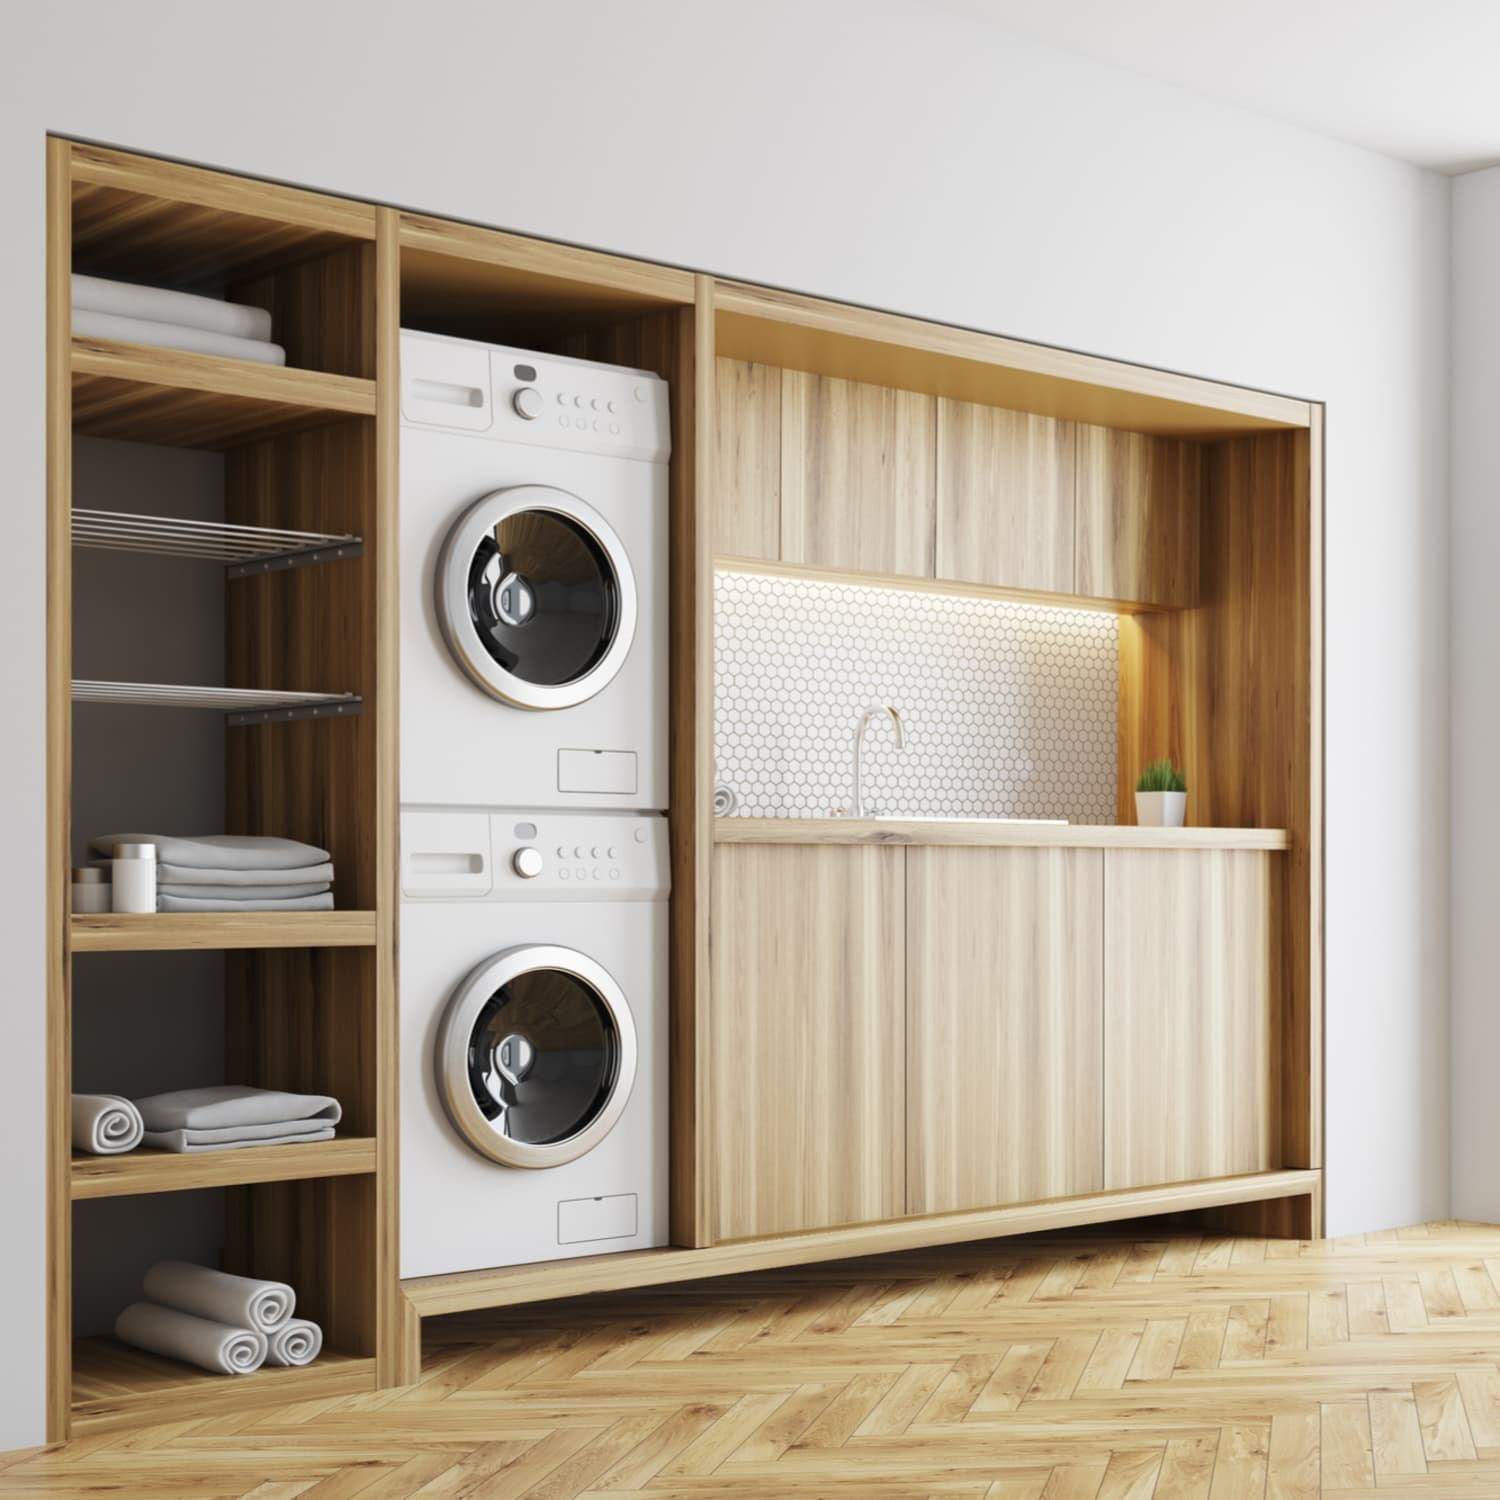 Tricks To Stacking Any Washer Dryer To Save Space